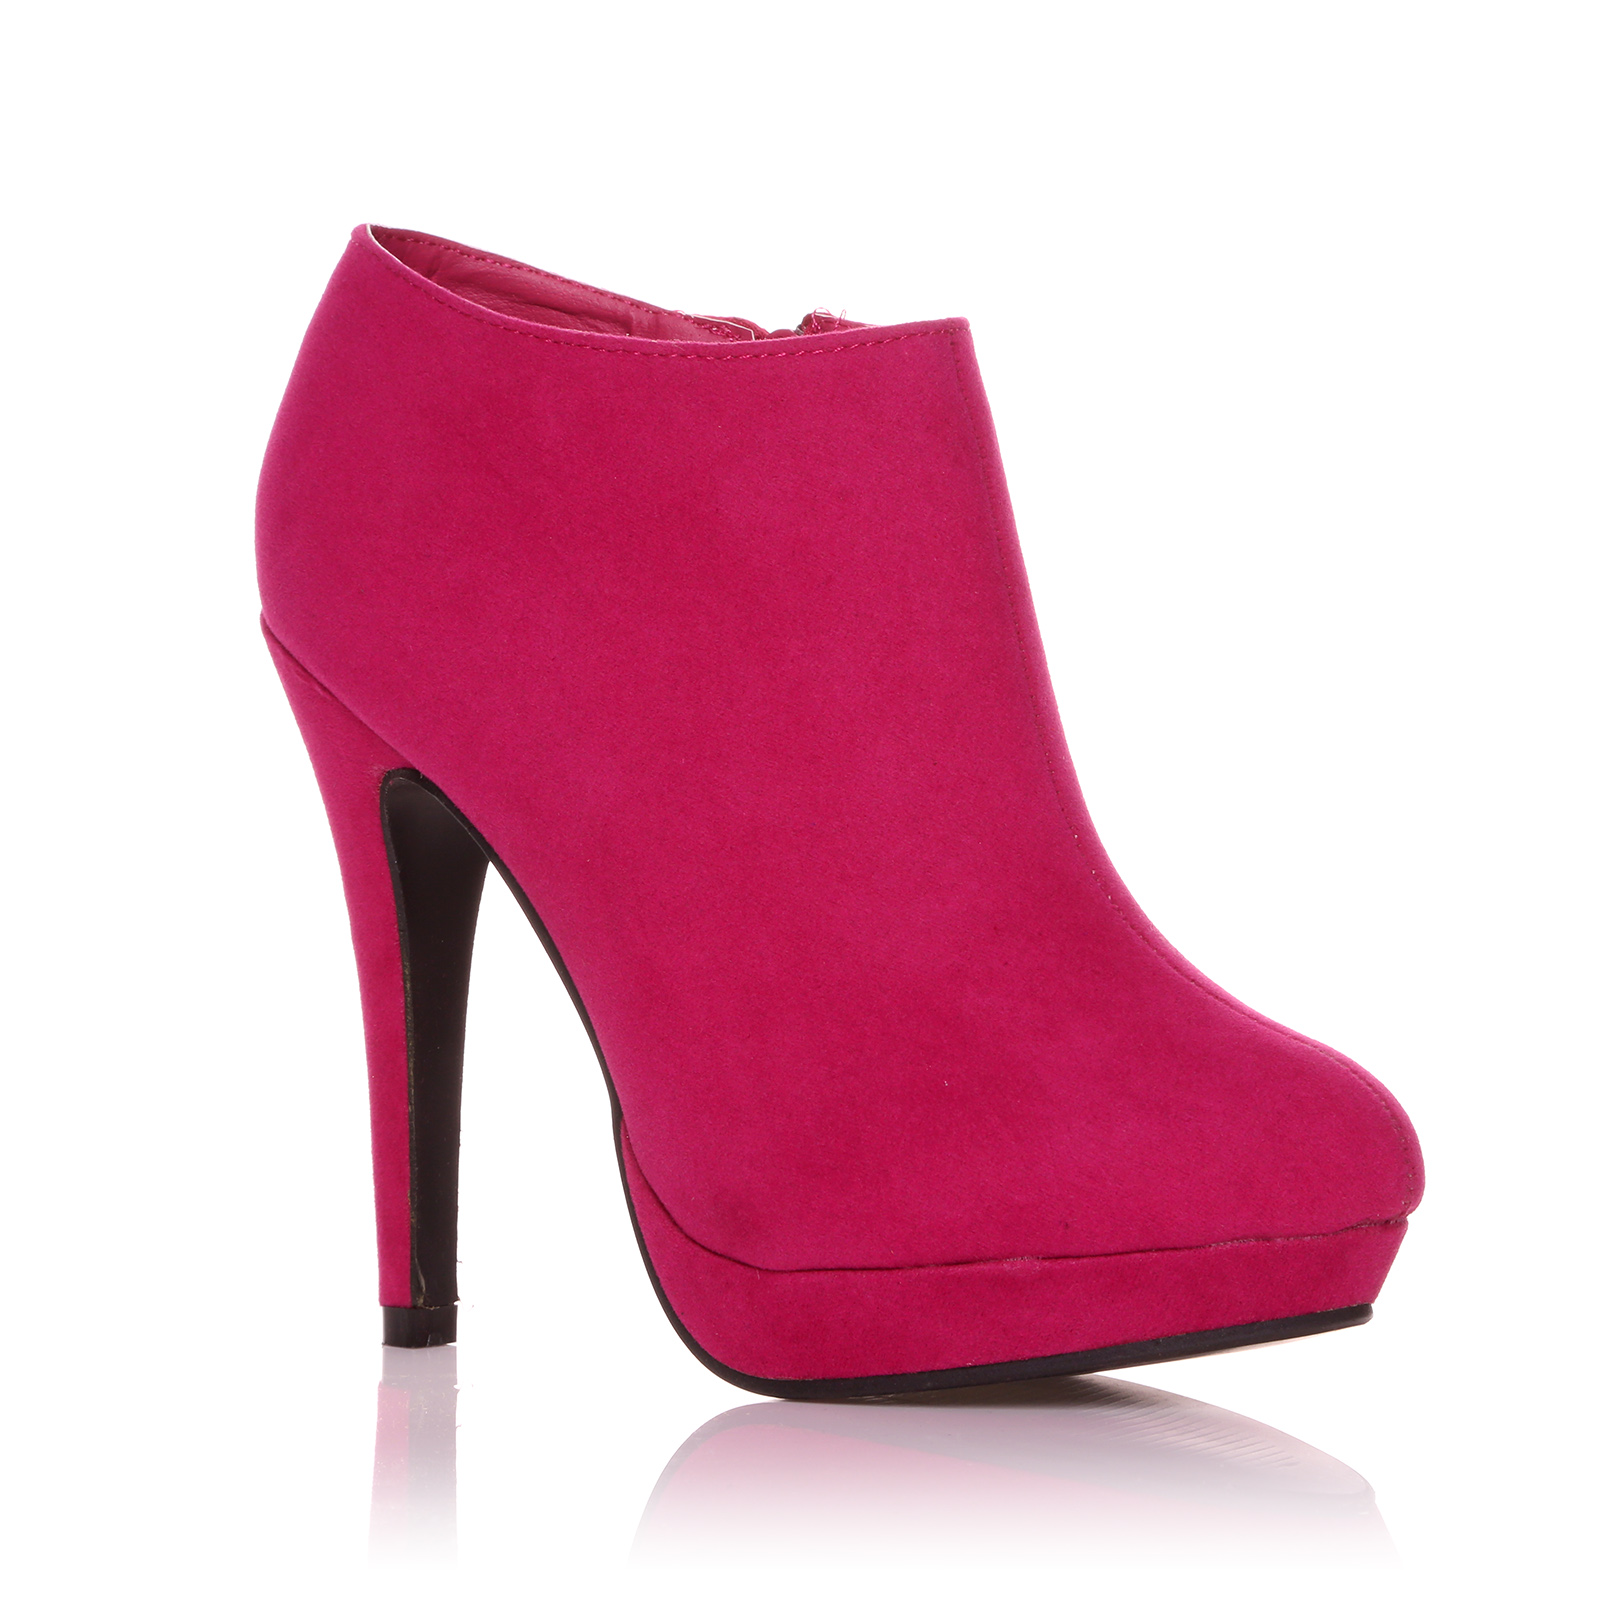 NEW-FASHION-PLATFORM-HIGH-HEELS-LADIES-WOMEN-CASUAL-ANKLE-BOOTS-SIZE-3-8